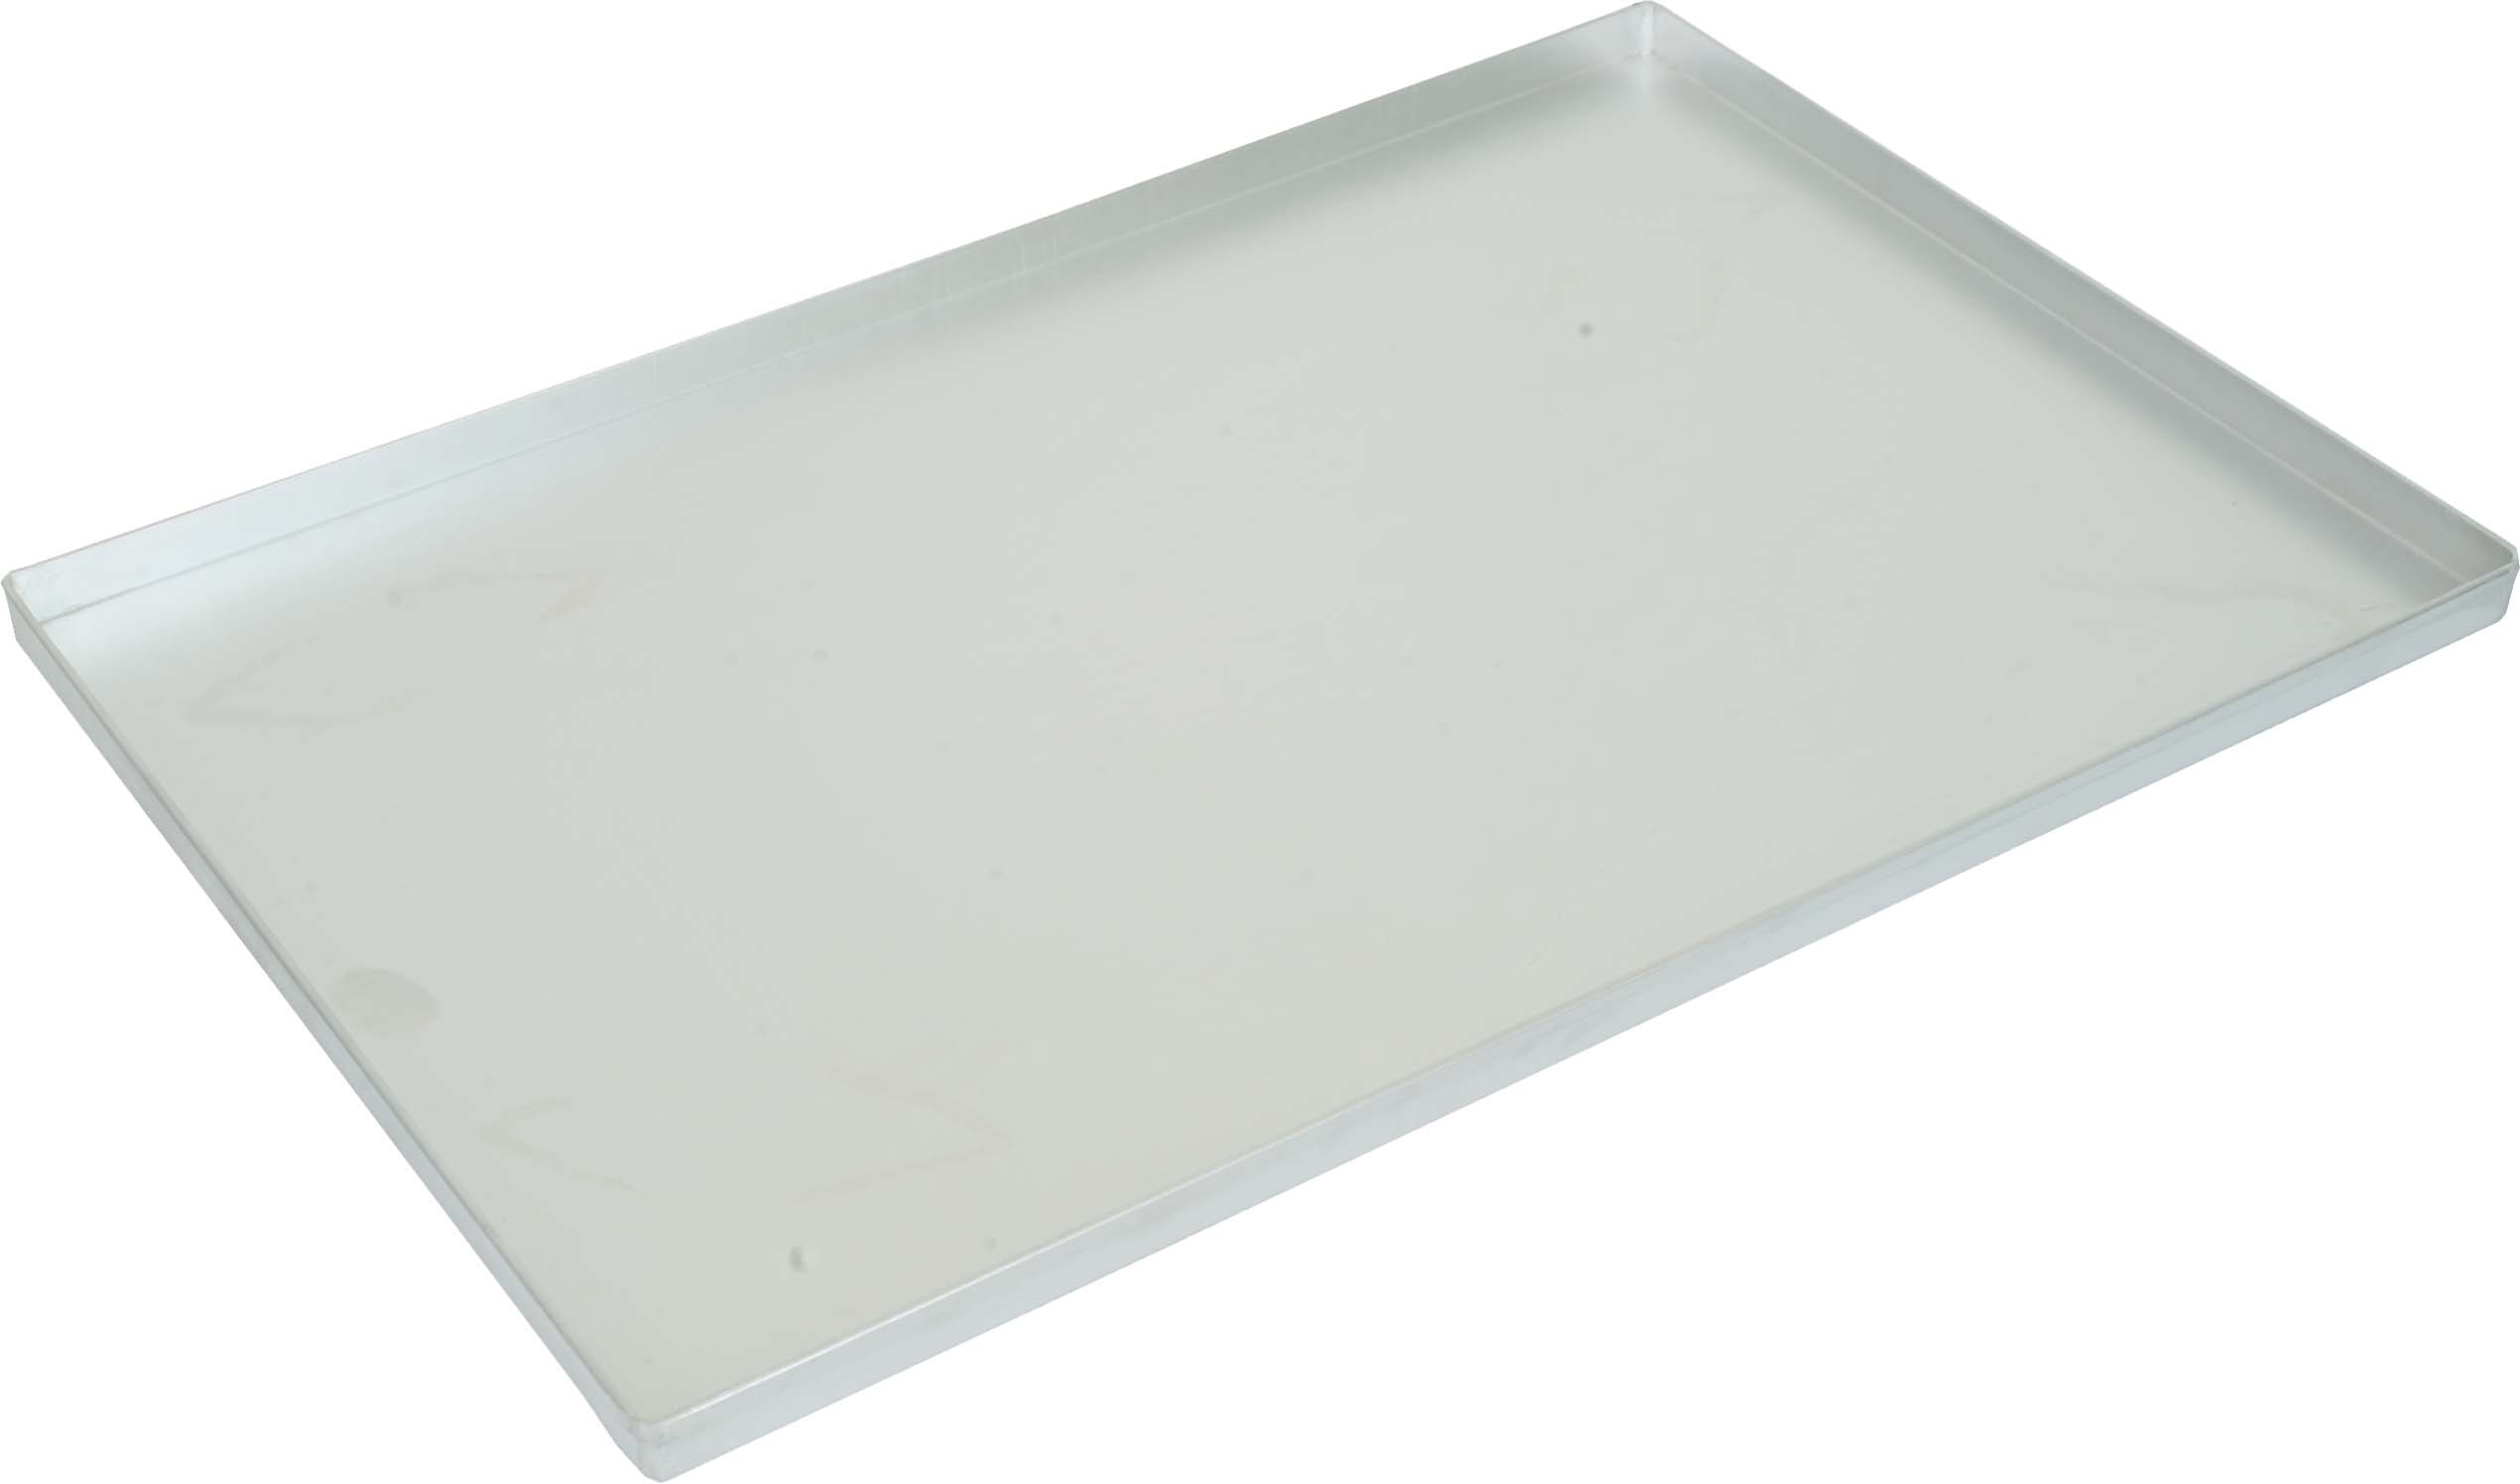 BAKING TRAY ALUMINIUM - 600 X 400 X 20mm